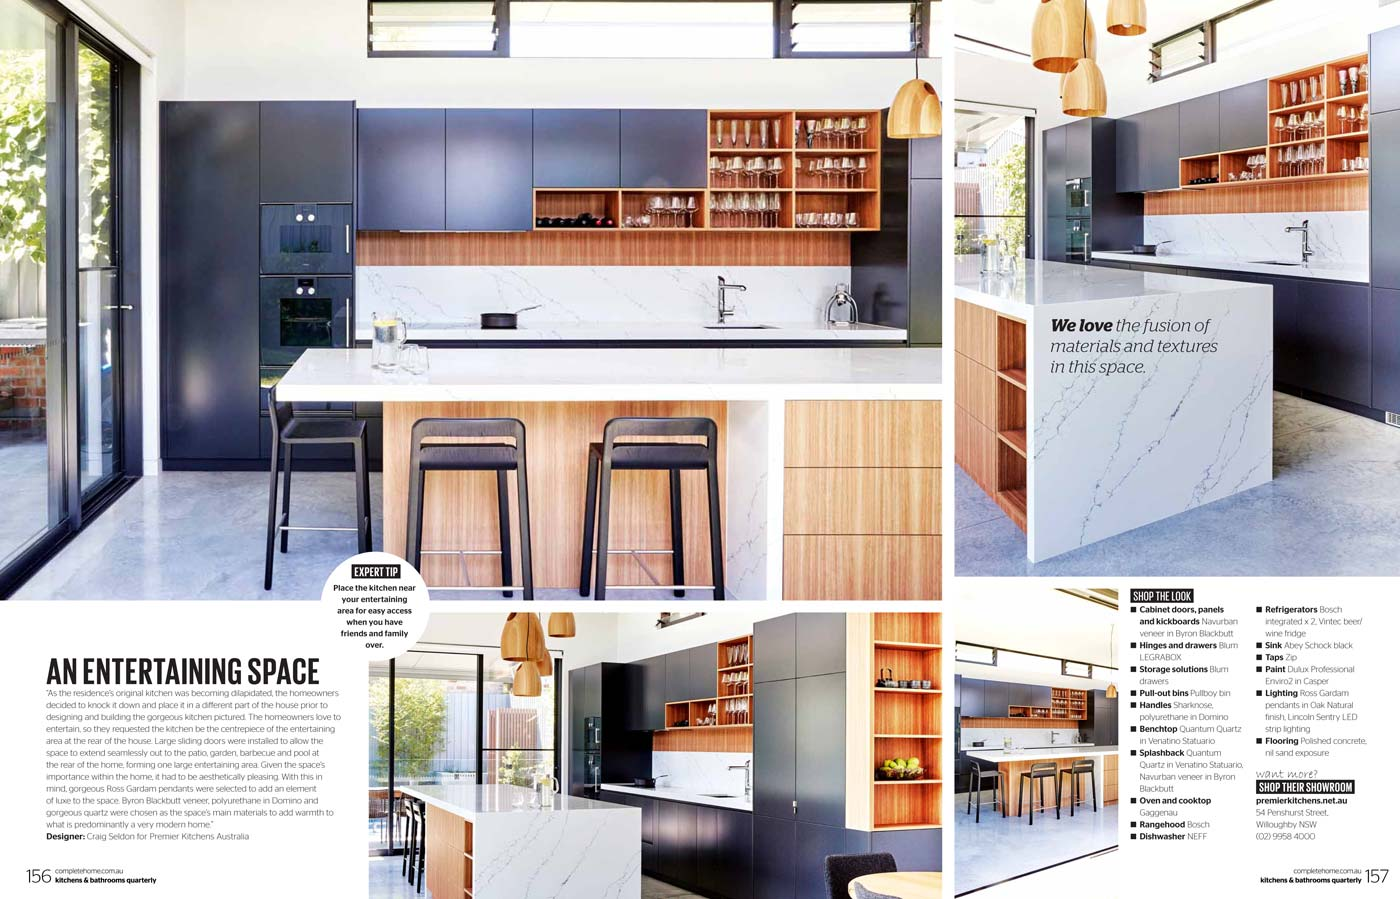 Kitchens and Bathrooms quarterly magazine article featuring Premier Kitchens Australia Cammeray kitchen design